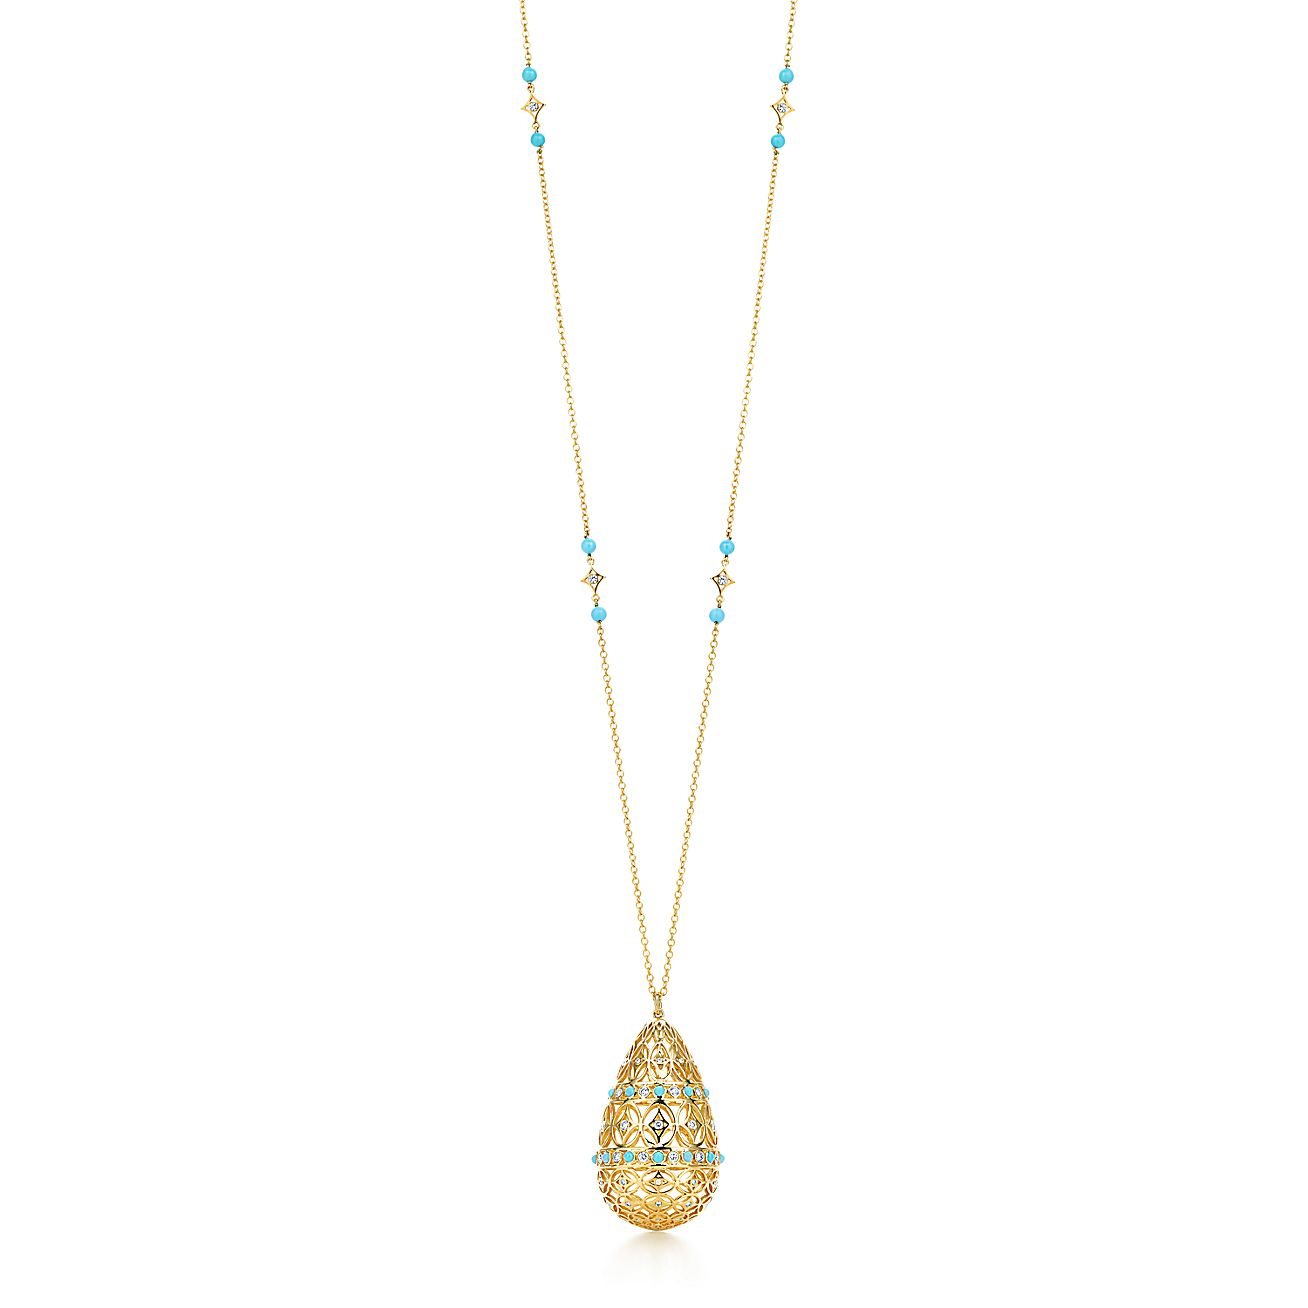 Paloma's Marrakesh:Egg Pendant